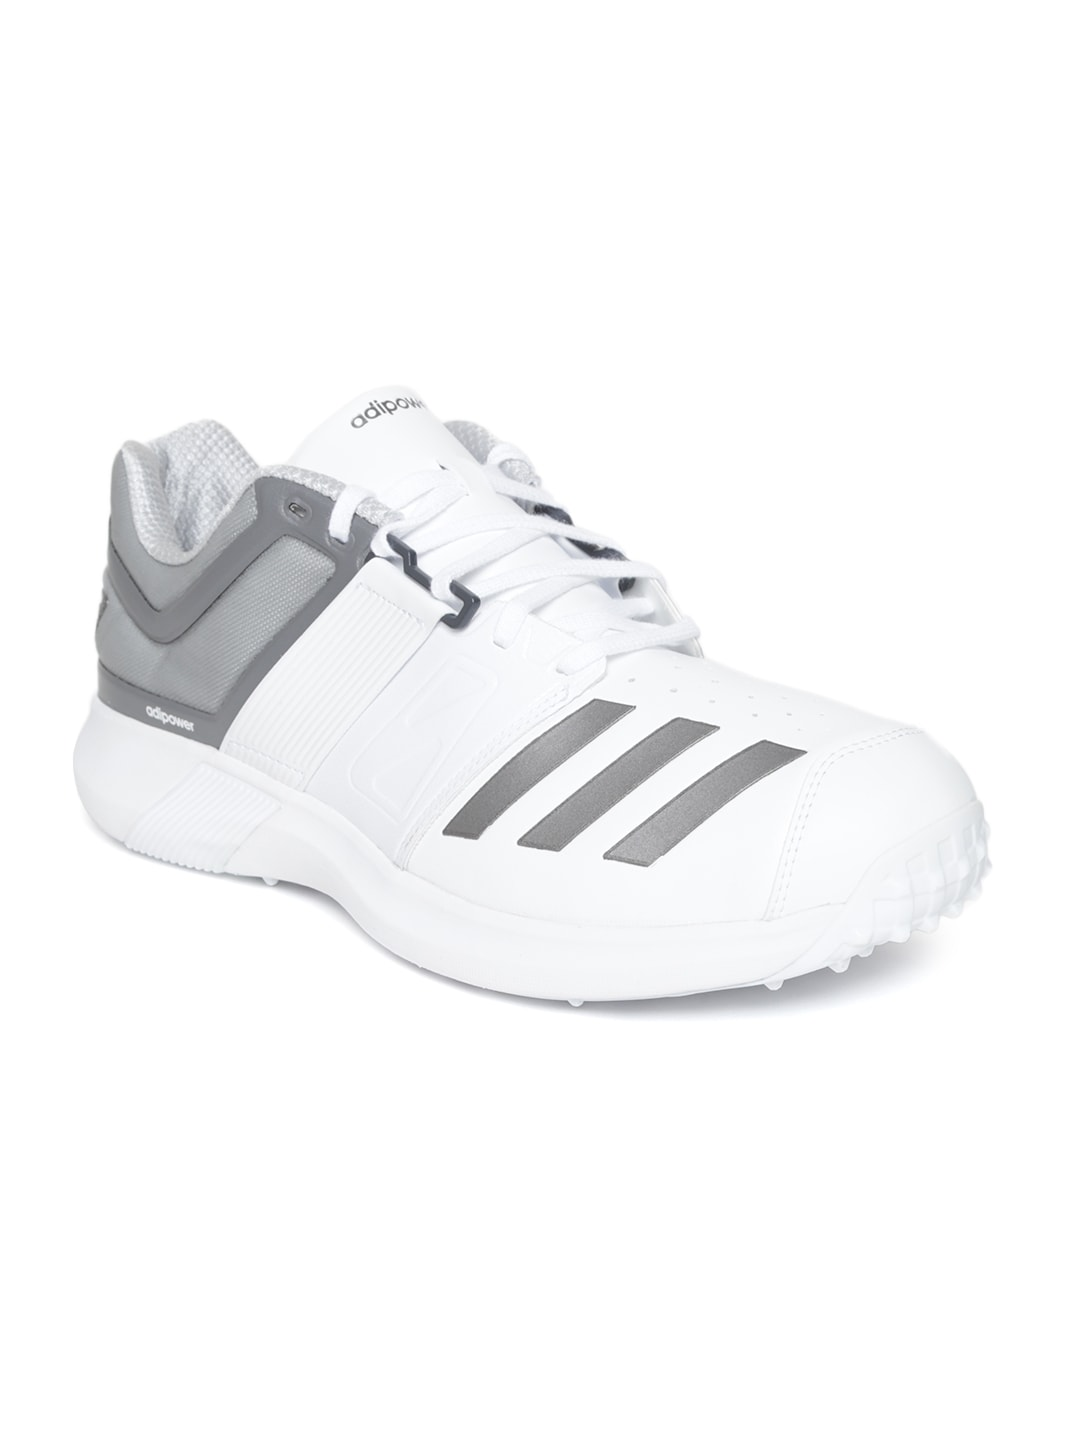 6490220dcb0 Adidas Footwear Men Sports Shoes - Buy Adidas Footwear Men Sports Shoes  online in India